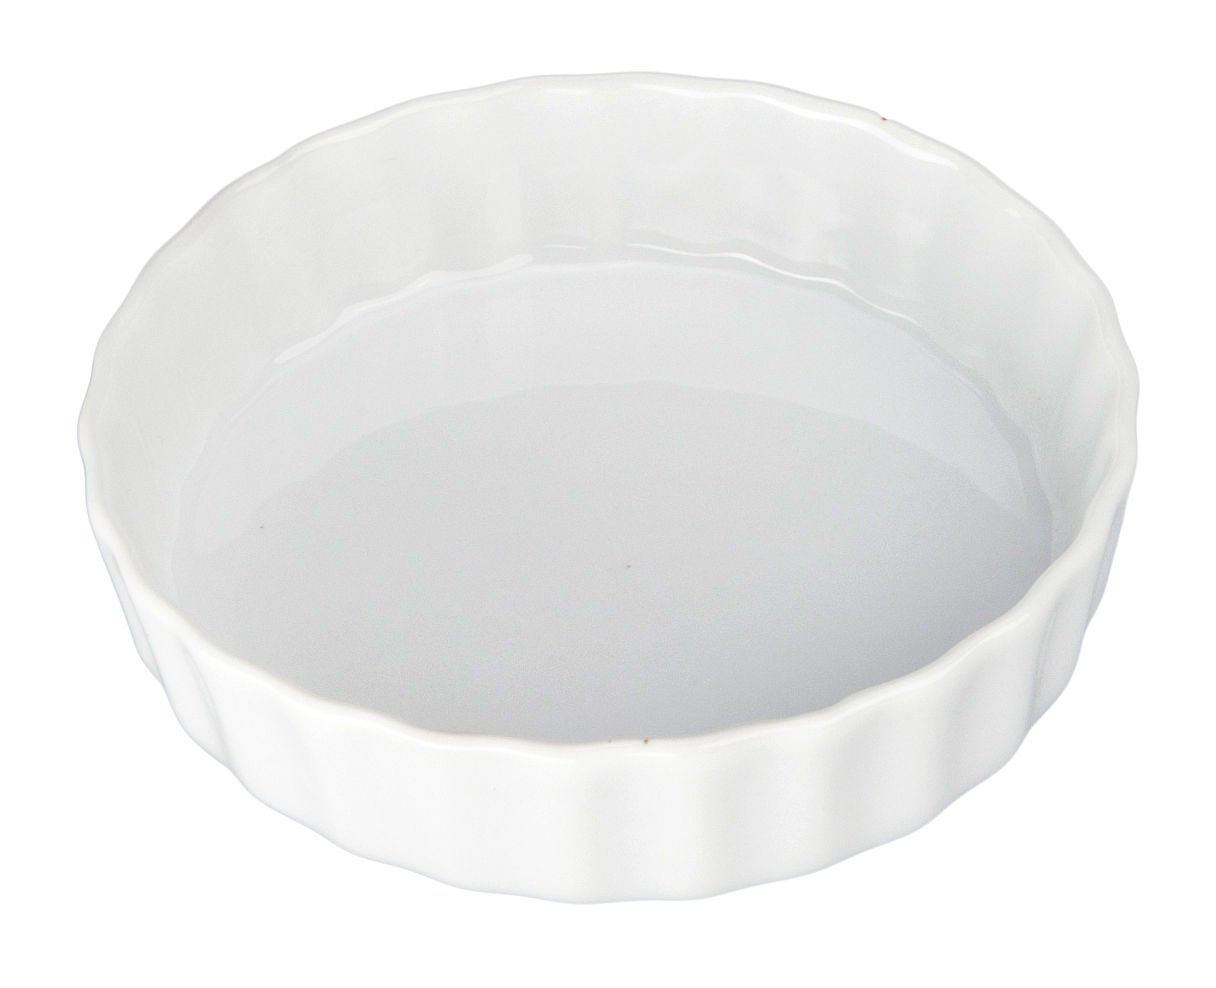 BIA Cordon Bleu 5-Inch Porcelain Quiche Dish, Pack of 4 900075